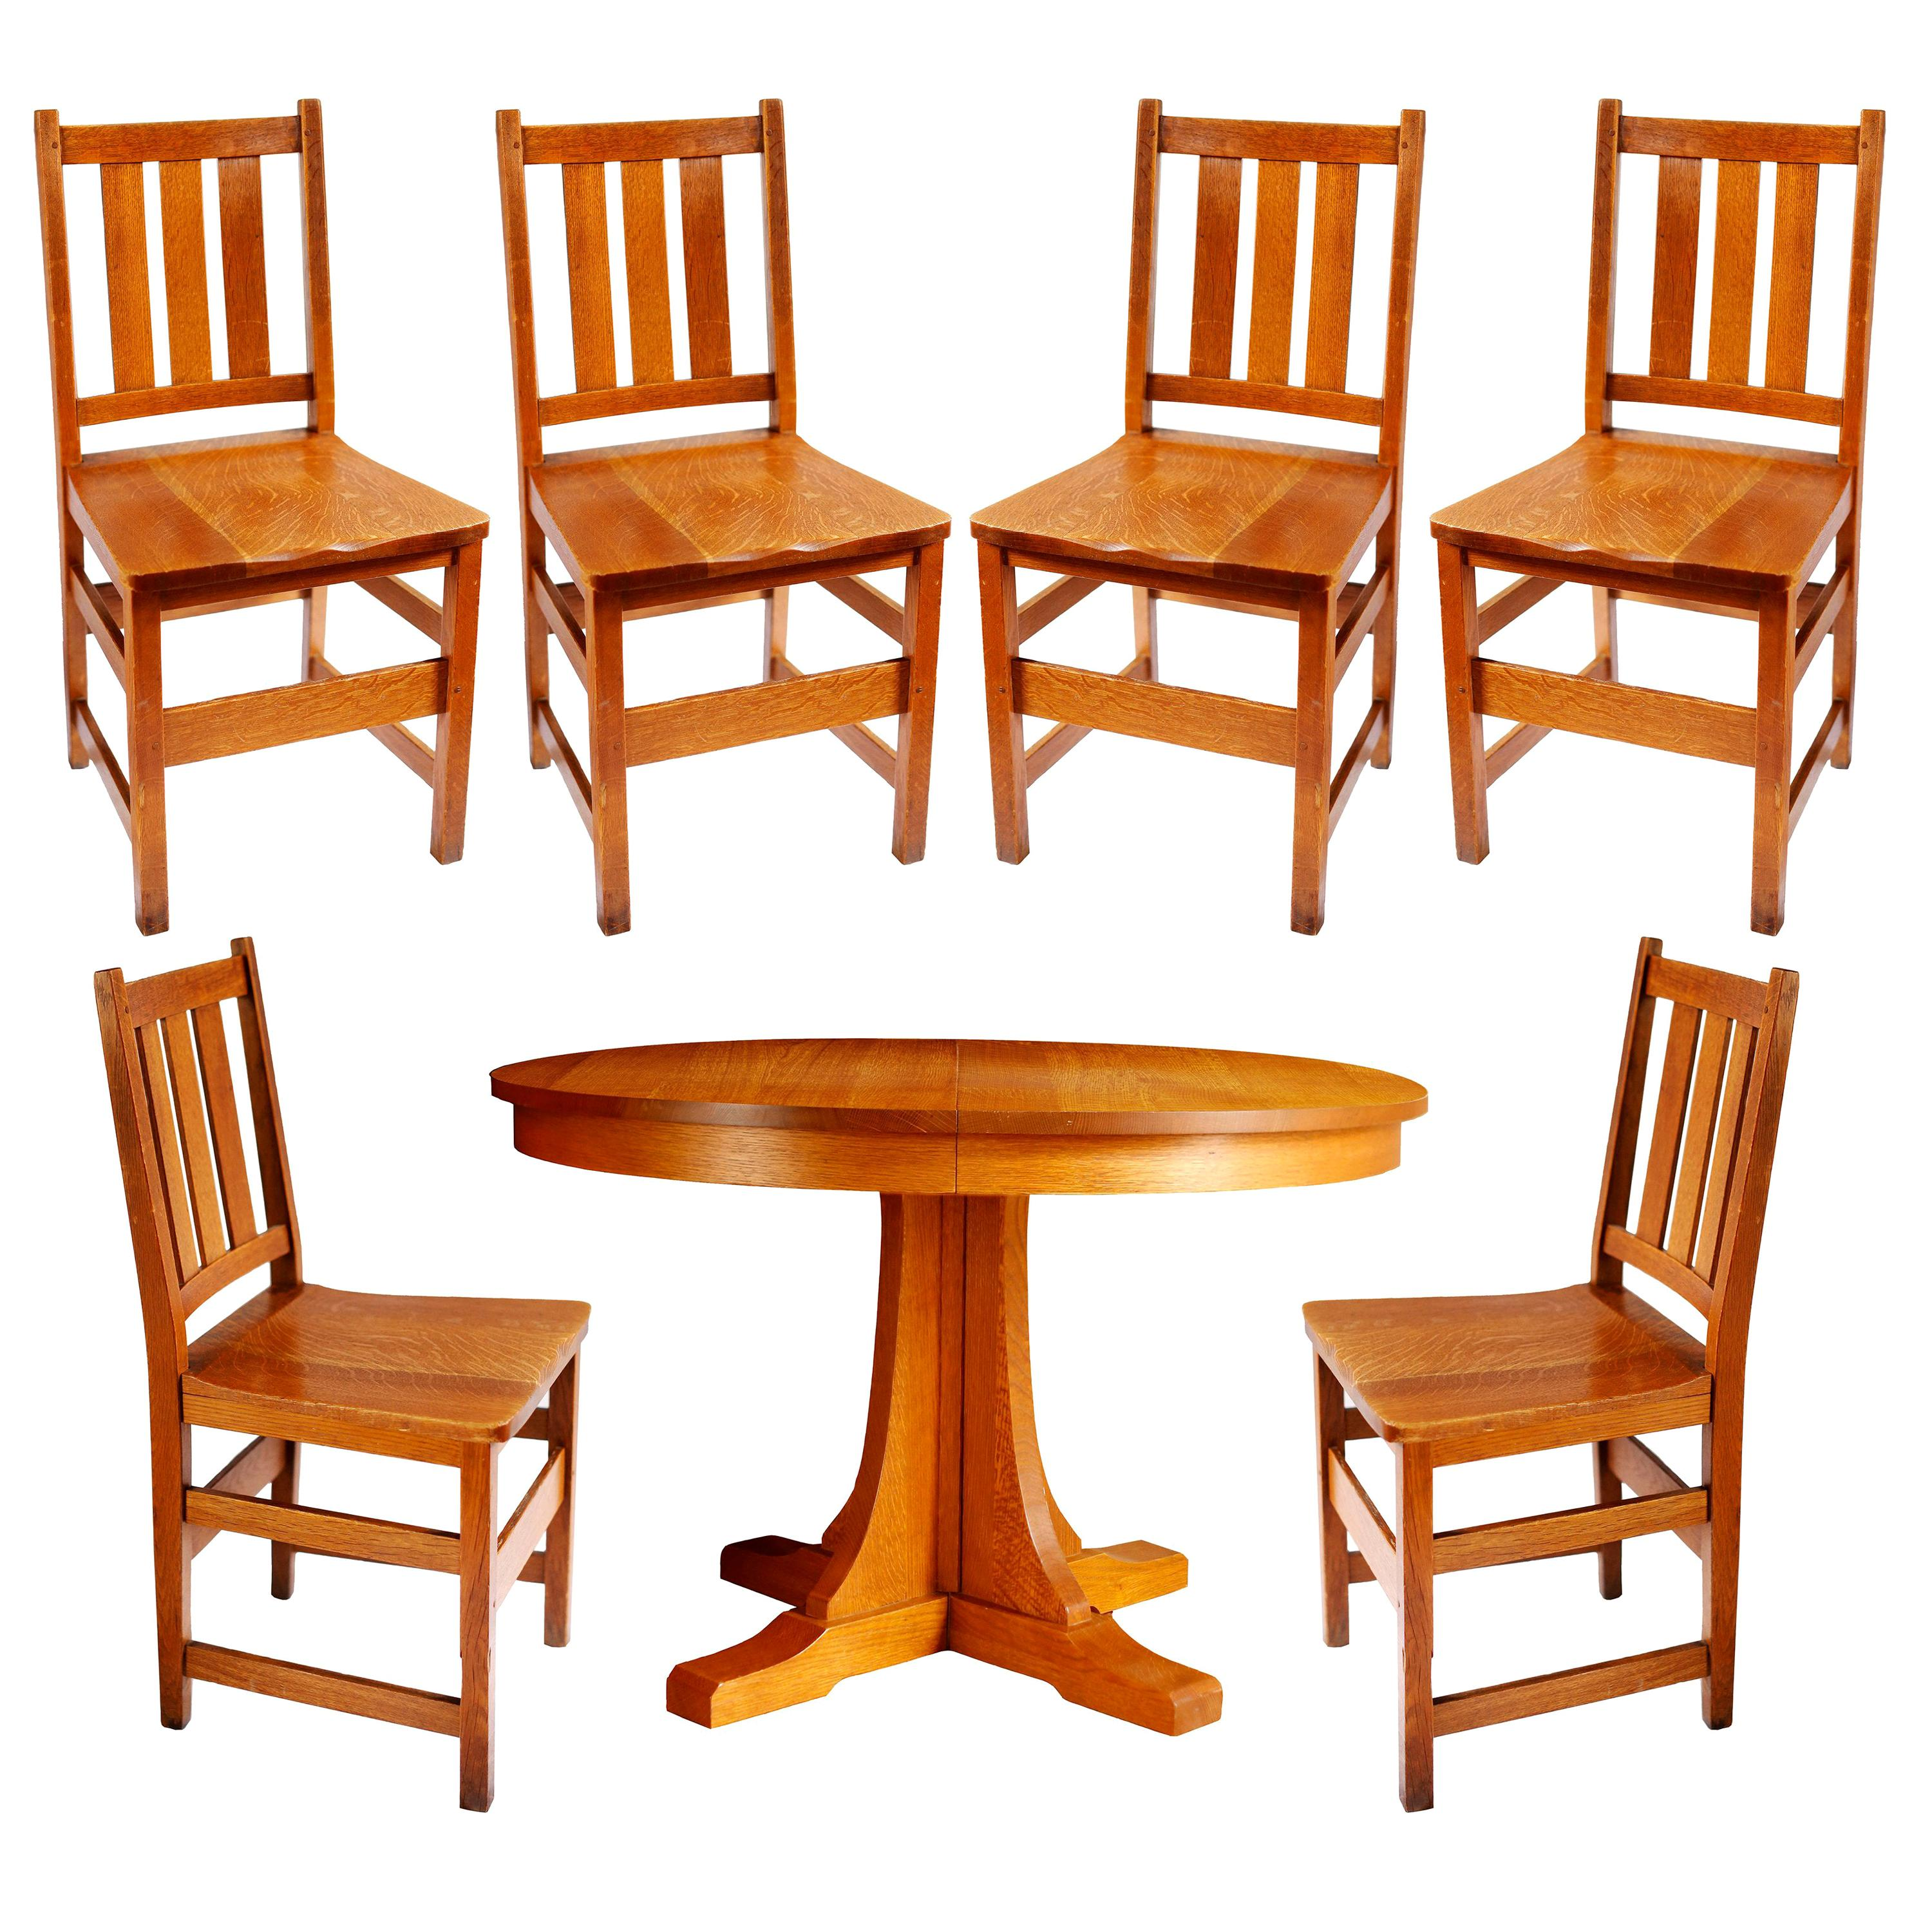 Enjoyable Andy Warhols 6 Stickley Chairs From The Factory And Contemporary Stickley Table Alphanode Cool Chair Designs And Ideas Alphanodeonline